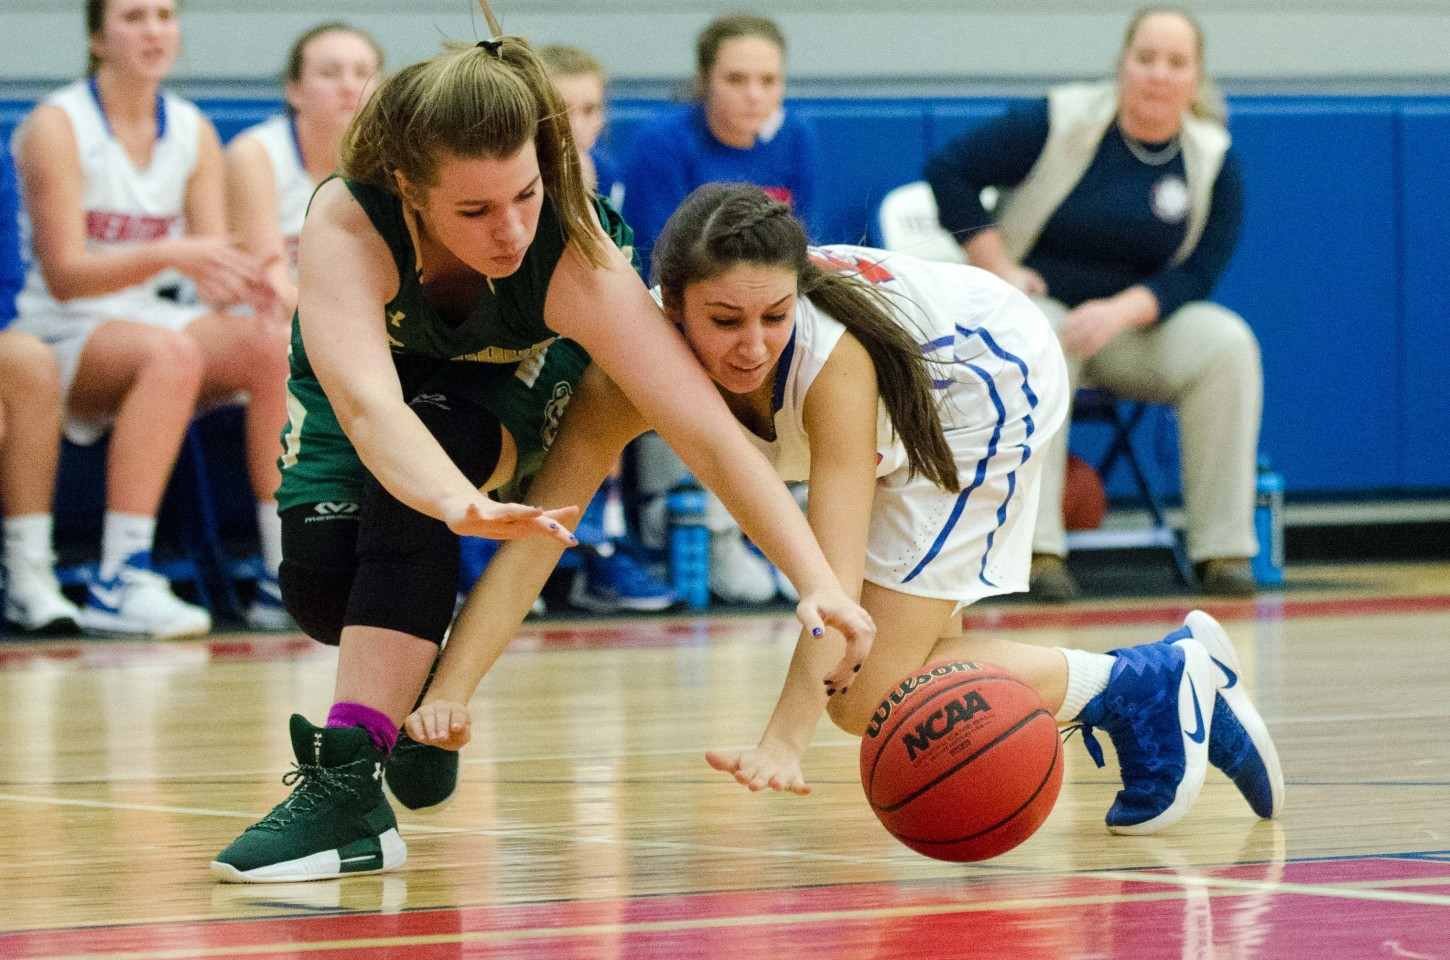 Heritage School's Tricia Underwood battles for a loose ball in the second half.